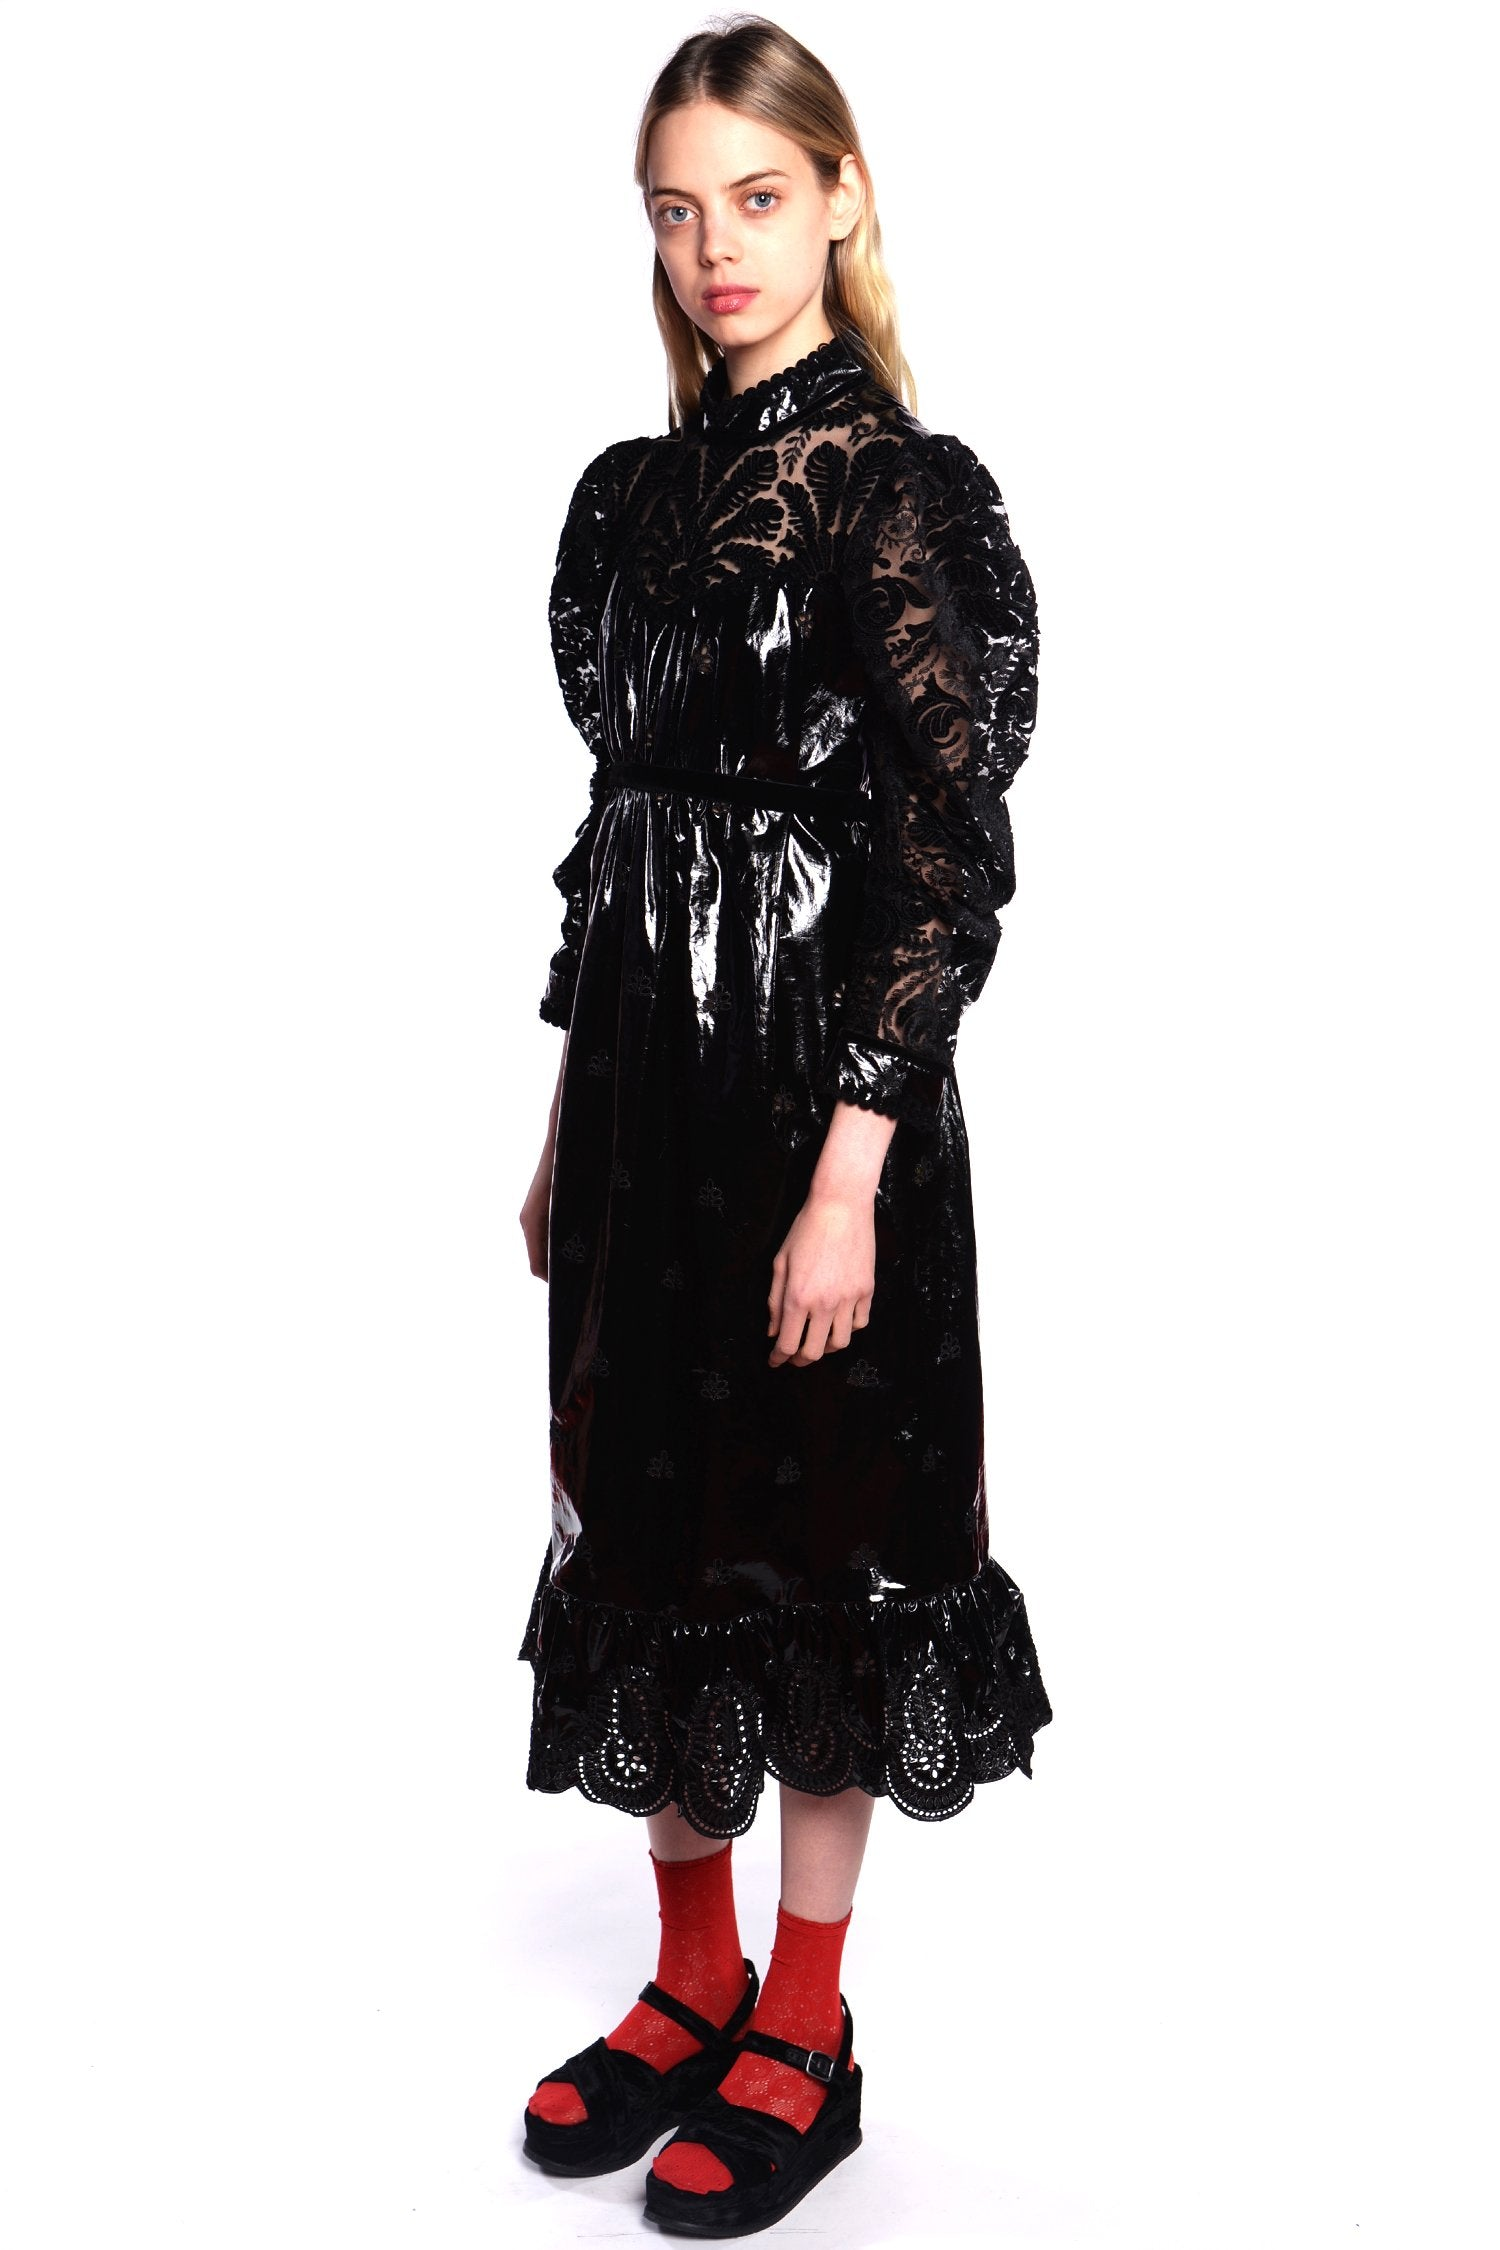 Lady In Black Lace & Velvet Dress - Anna Sui